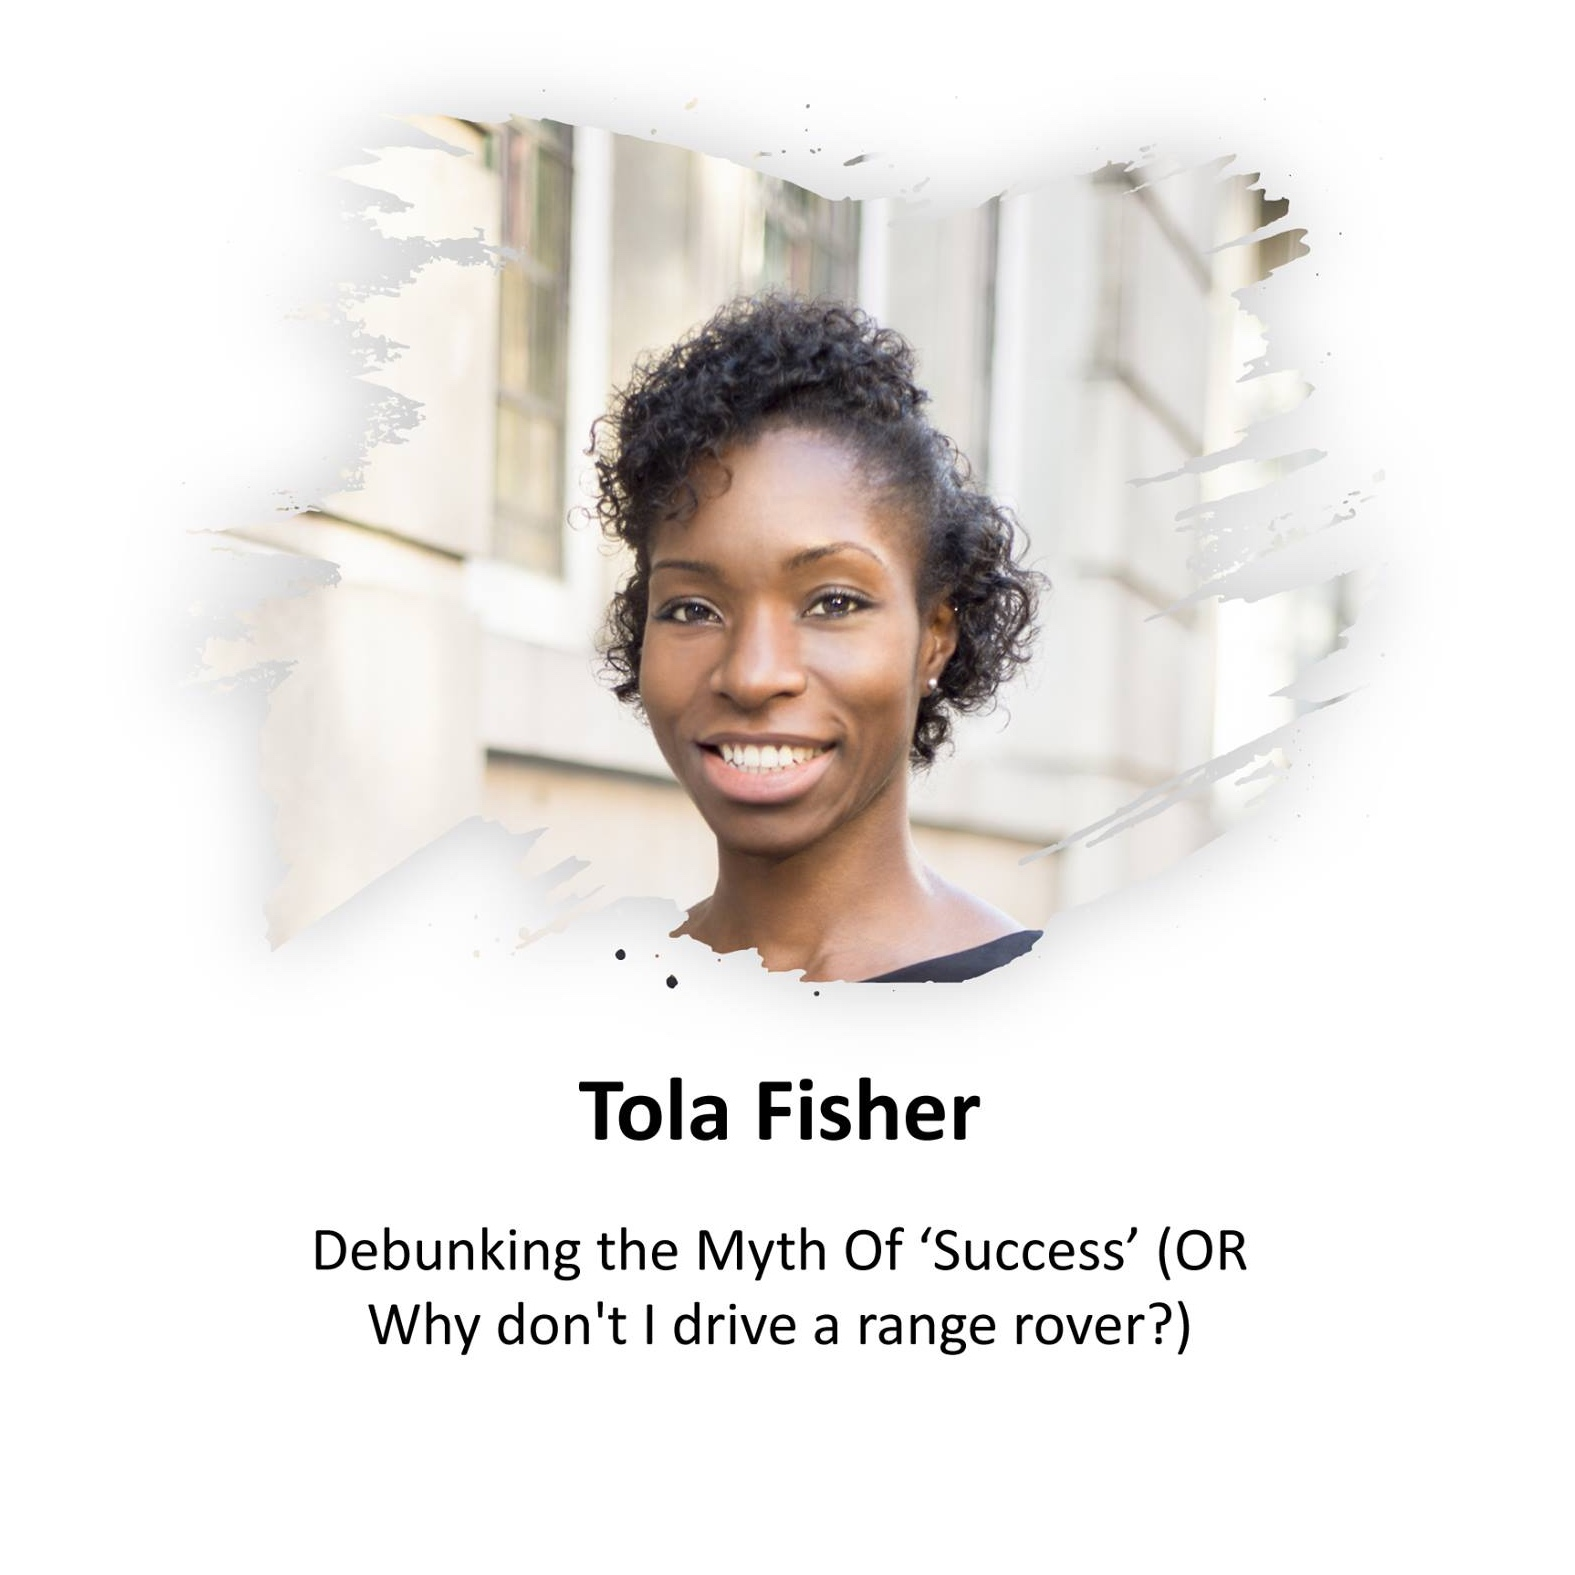 Tola Fisher is a freelance writer, blogger at  ChristCouture.co.uk  and author, currently working on her first book which will be published in early 2020 and looks into how we can find joy despite not 'winning' at life. She is also an ex-model, who reached the final auditions for Britain's Next Top Model twice, flopped the interview for her dream graduate job at Christian Dior and was subsequently rejected (very politely) from roles at Company, Elle and almost every other woman's glossy. She wants to encourage women that these 'failures' are not the opposite of 'success'.